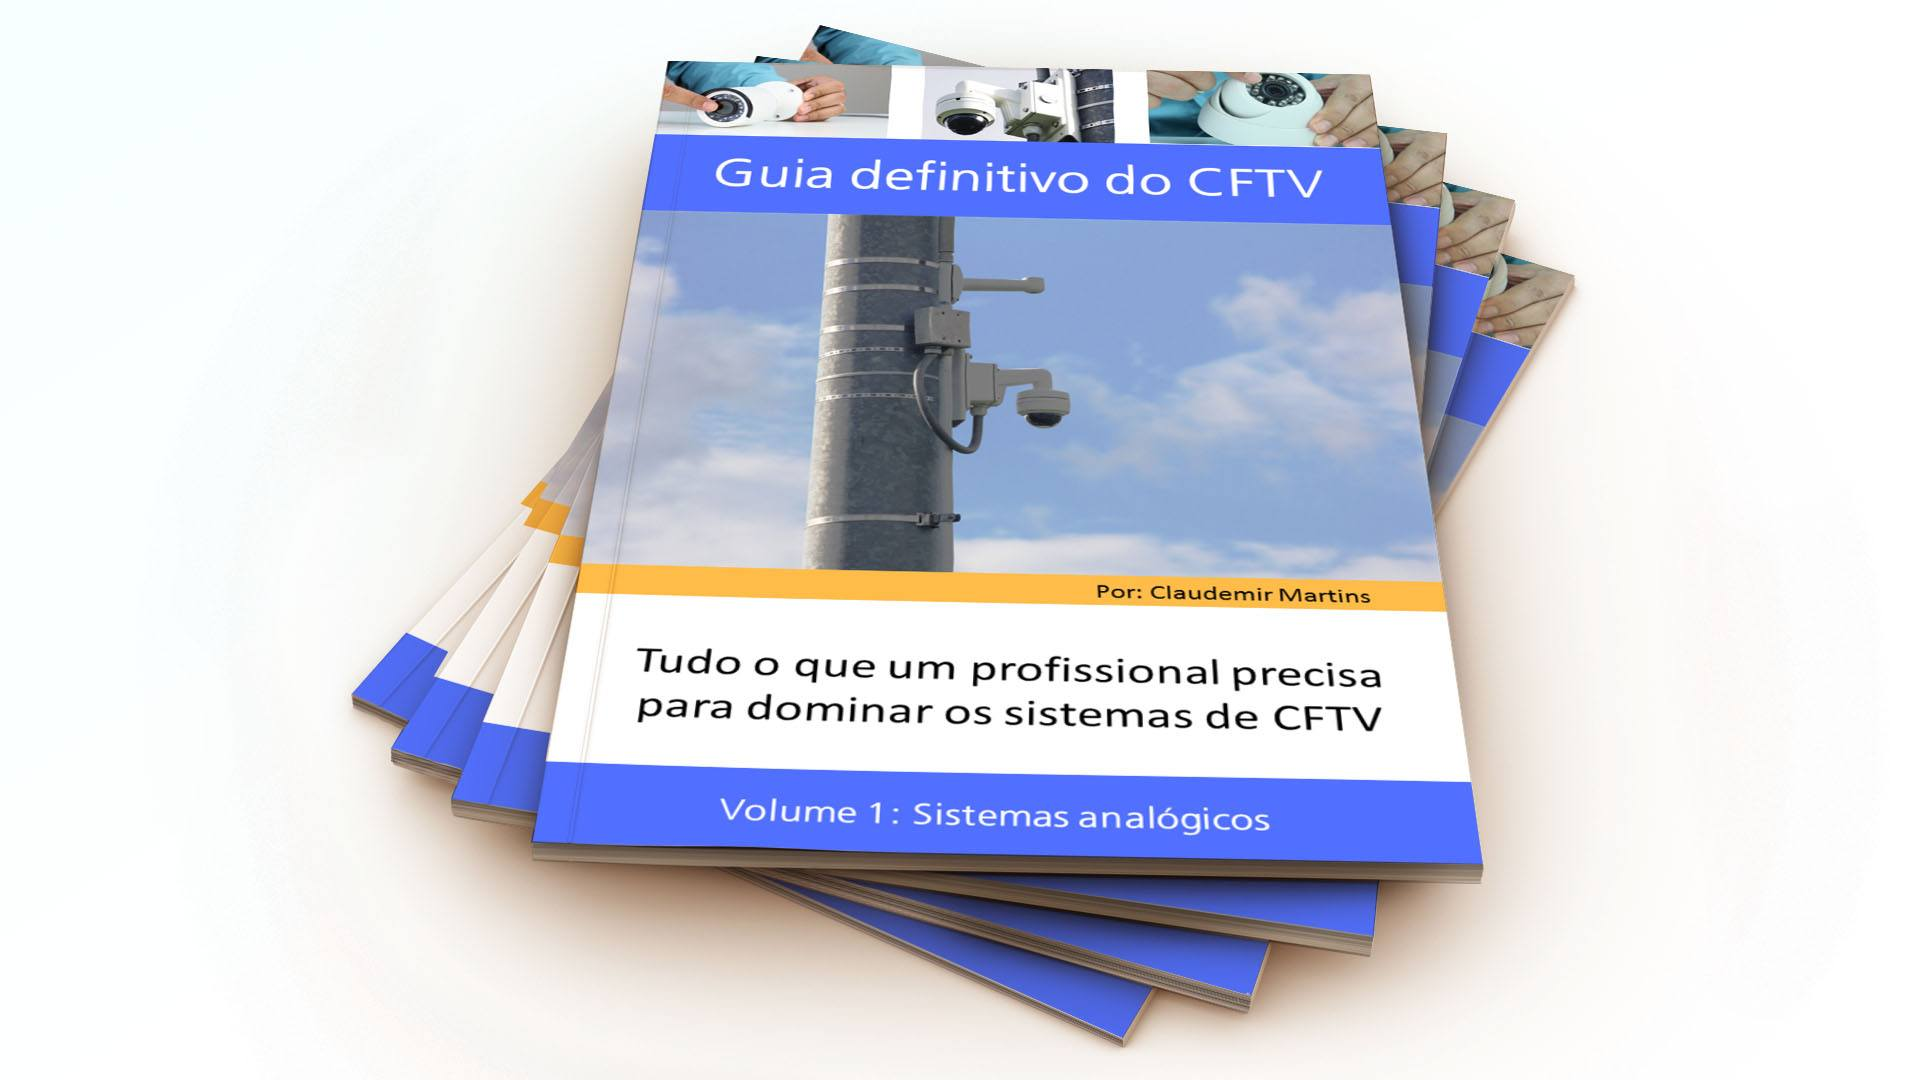 Guia Definitivo do CFTV V1